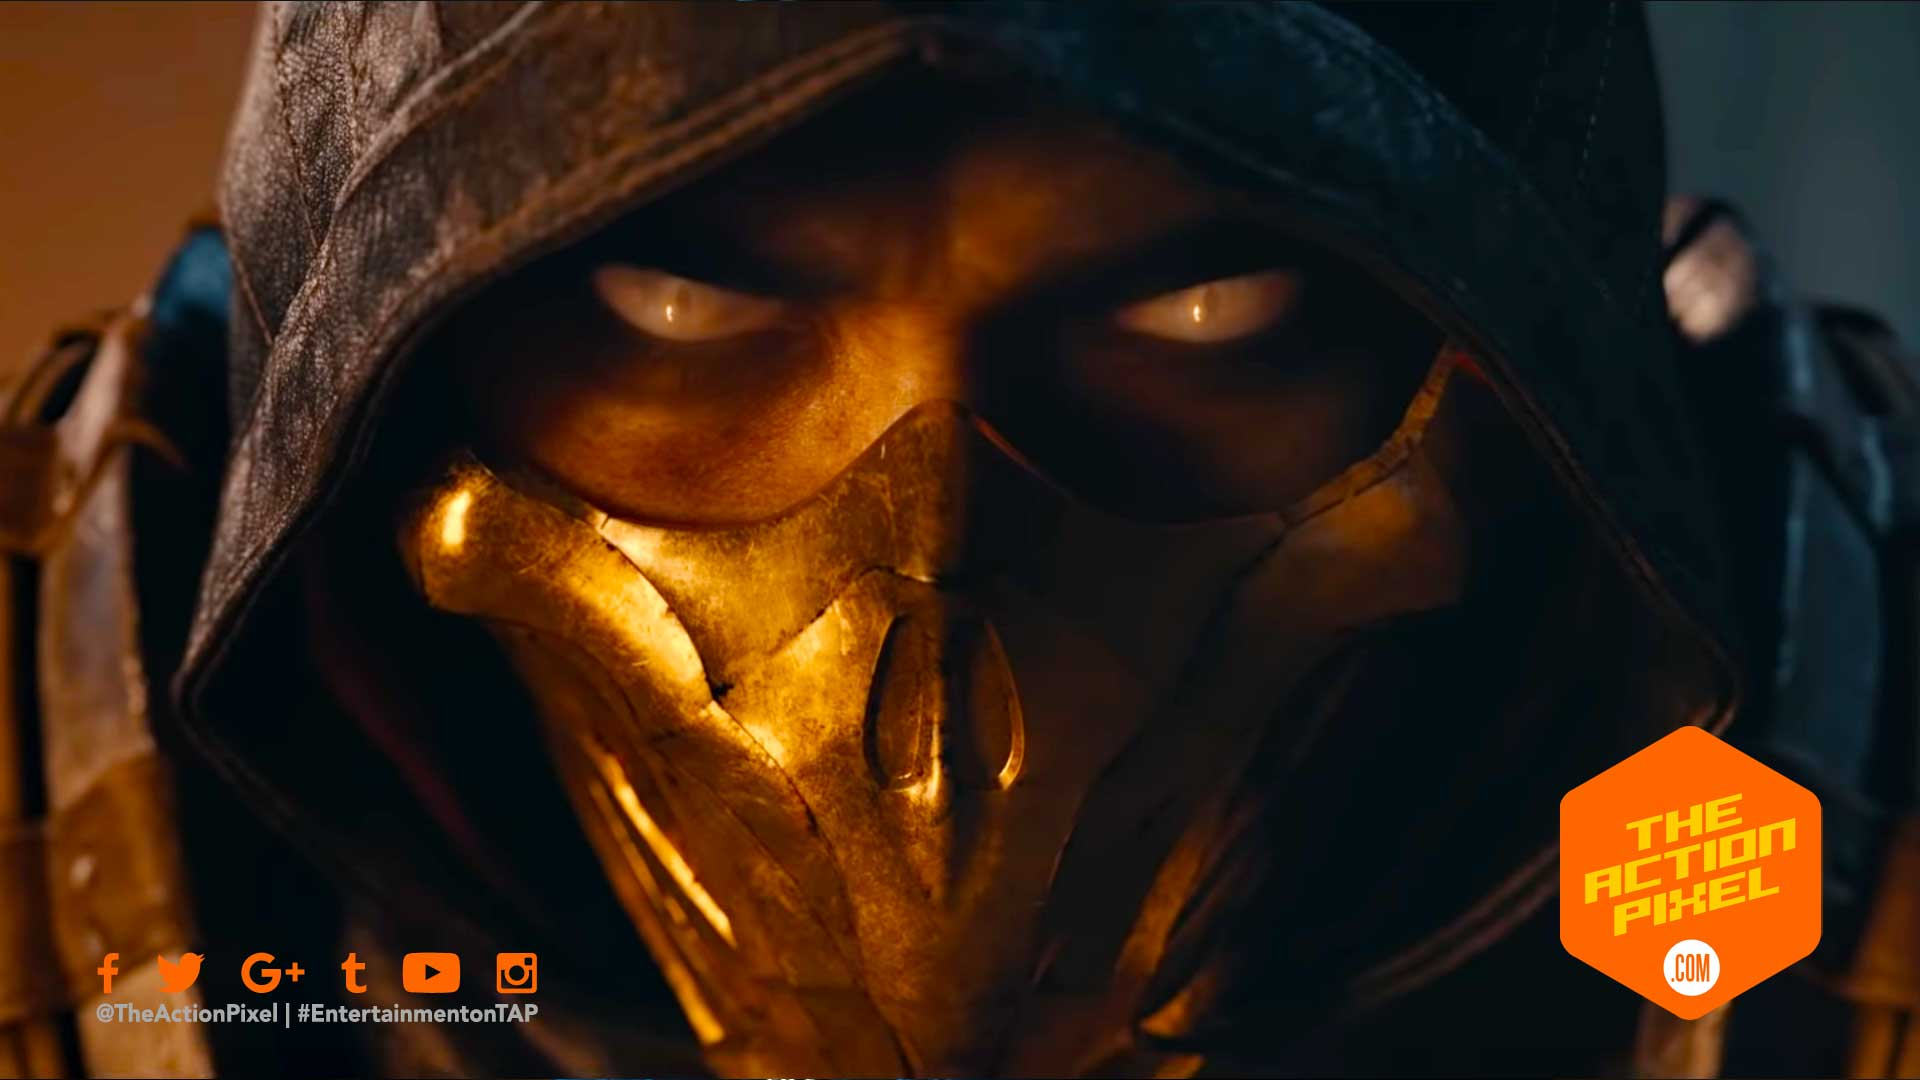 mortal kombat, mortal kombat 11, mk11 tv spot, mortal kombat 11 tv spot, kitana, scorpion, skorpion, the action pixel, entertainment on tap, wb games, netherrealm studios, featured,